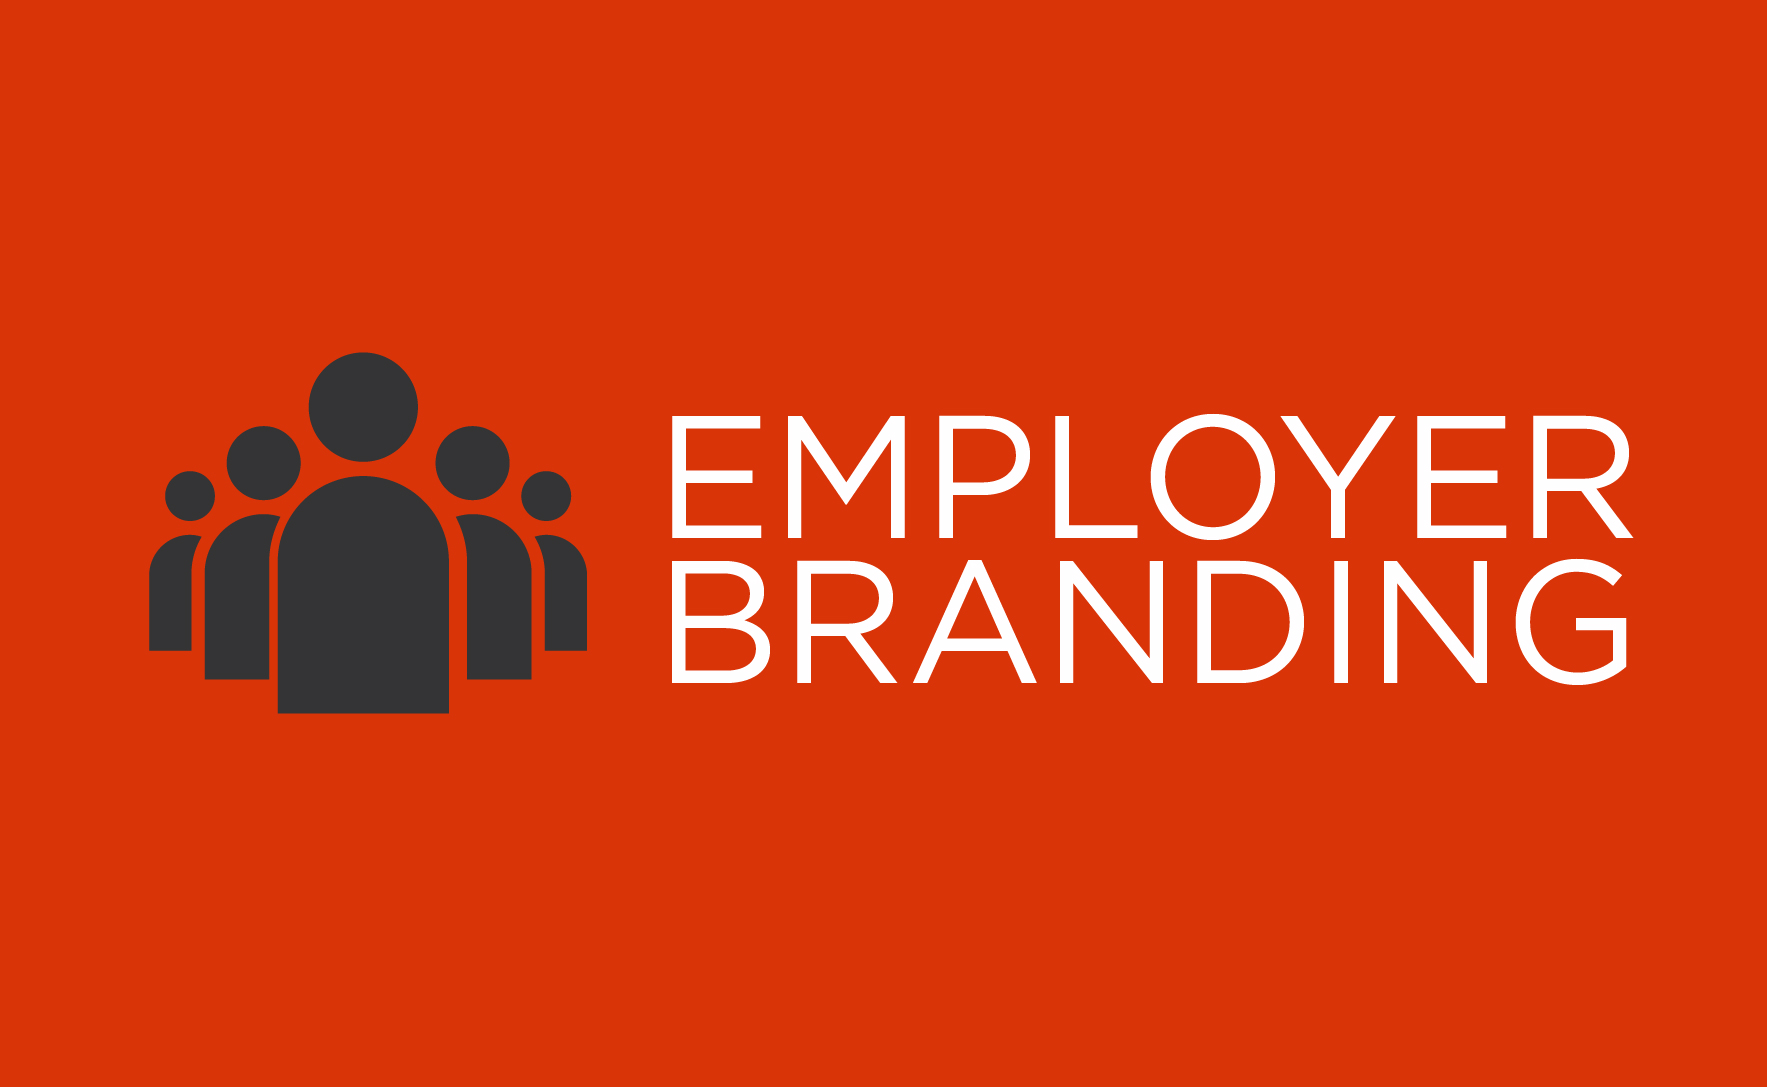 employee branding Give your company the employee branding it needs through video examples, your business projects and strategies will be well positioned in the public eye.